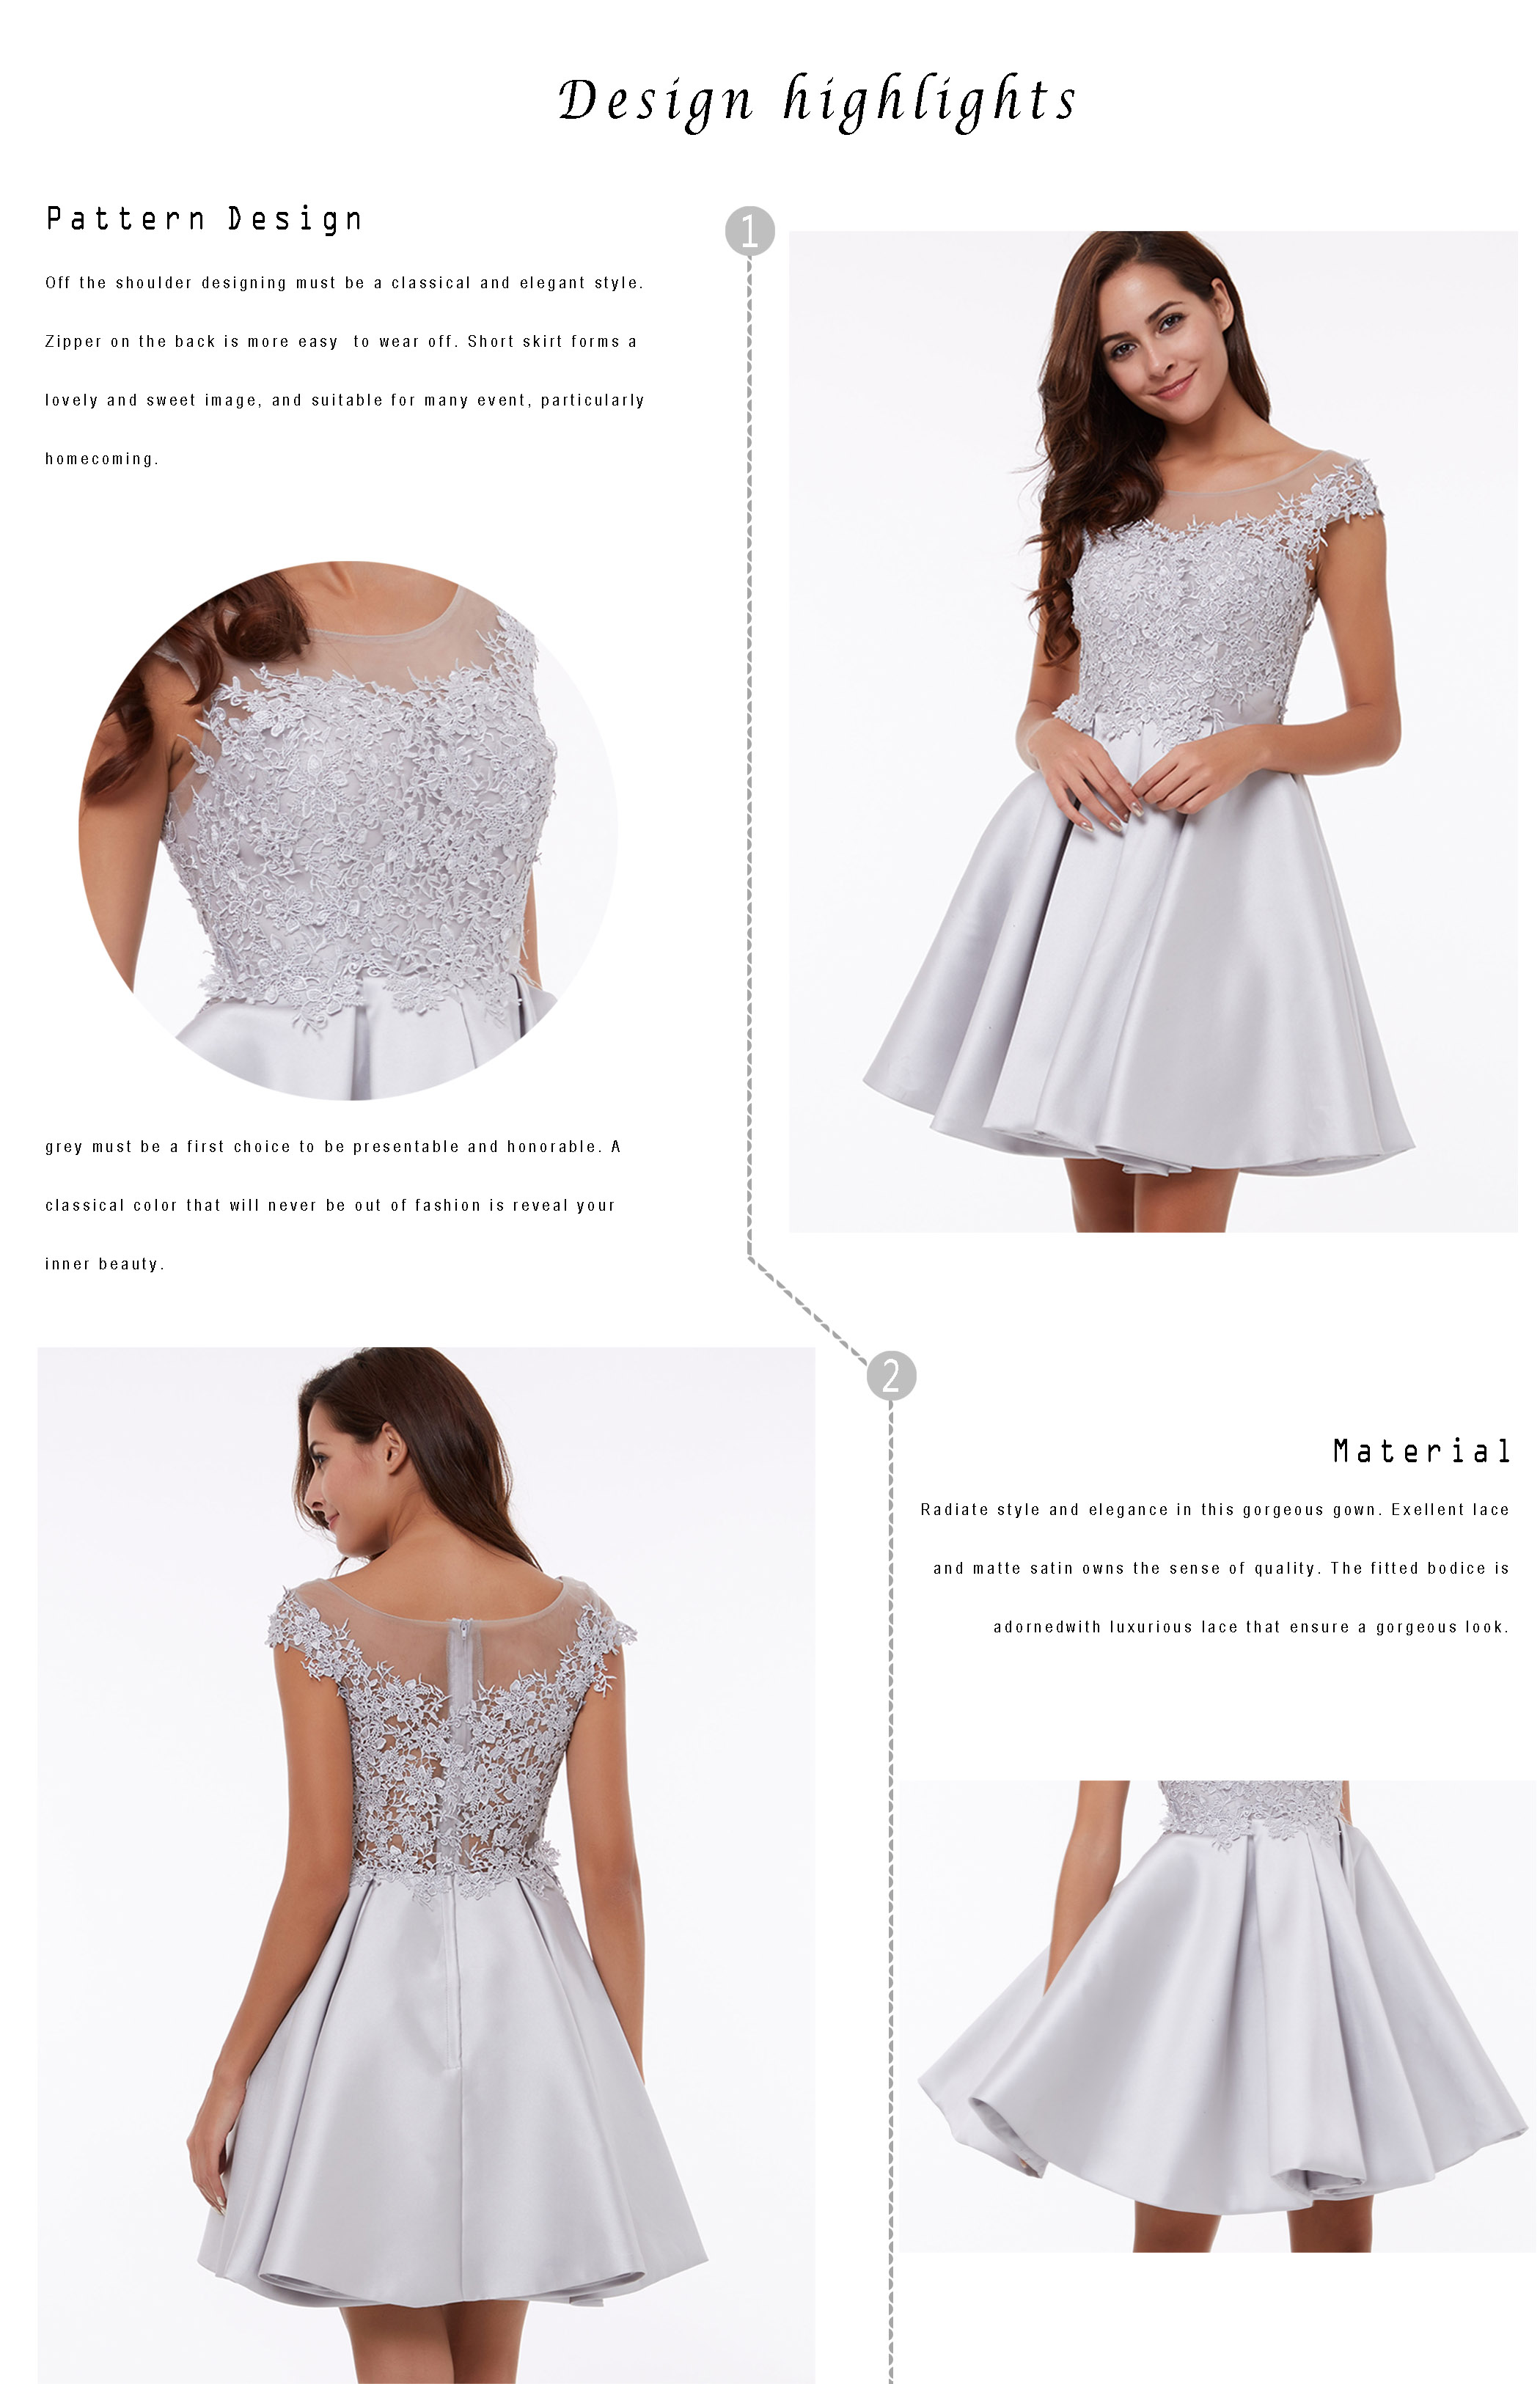 P style dress material